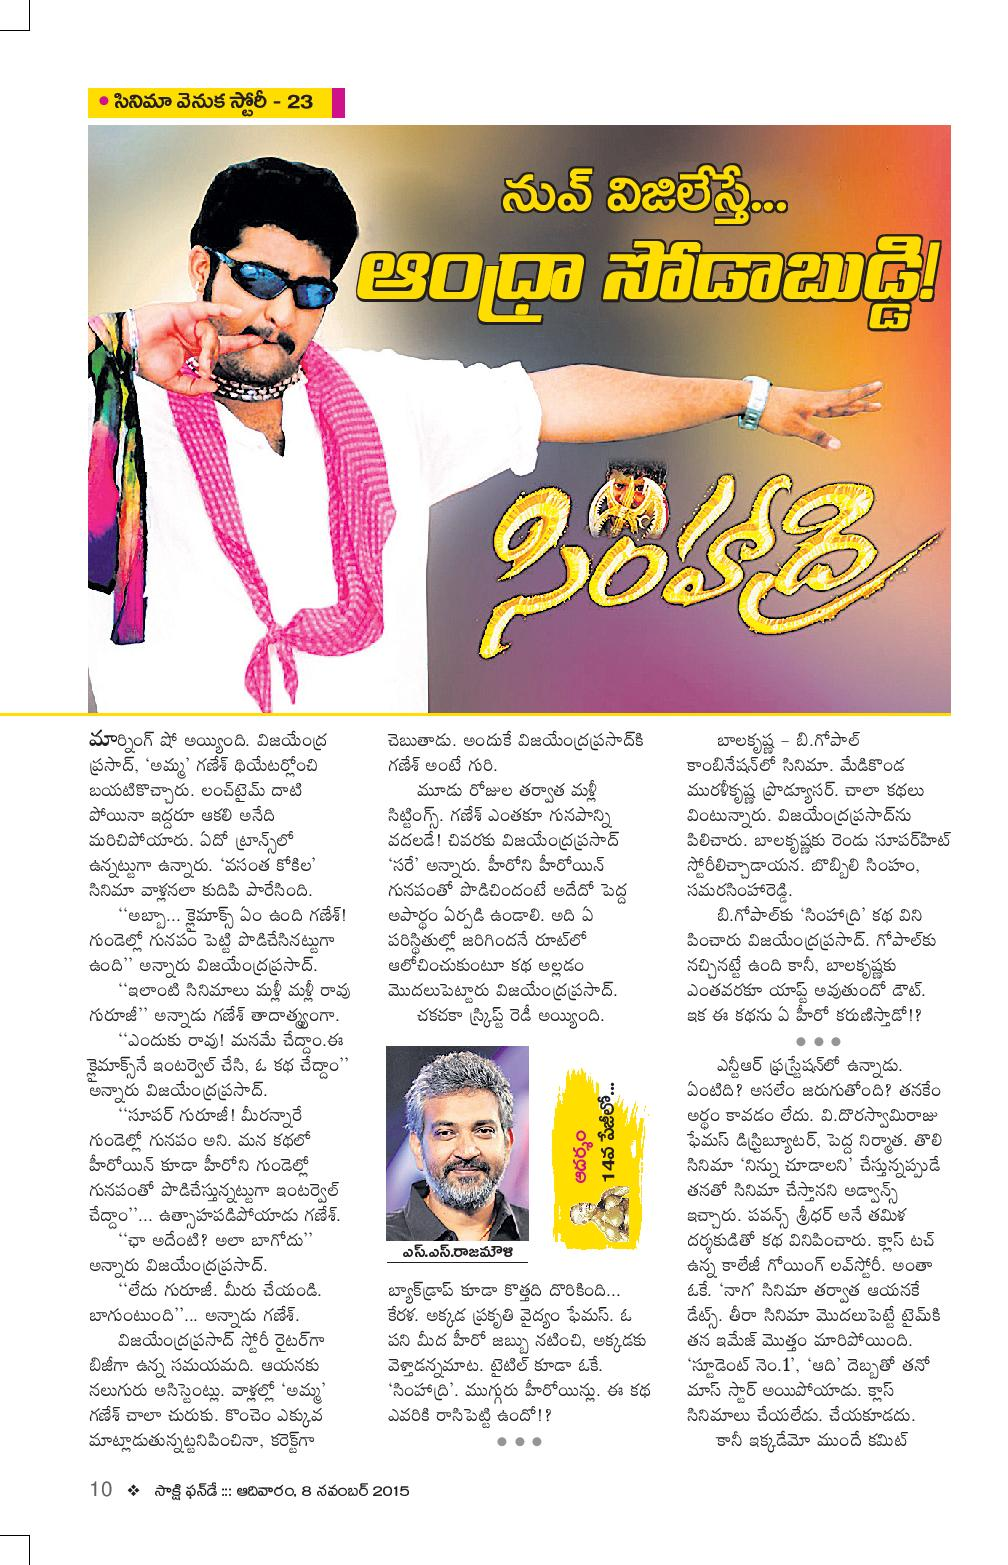 Cinema Venuka Story_Simhadri_Funday (08-11-2015)-page-001